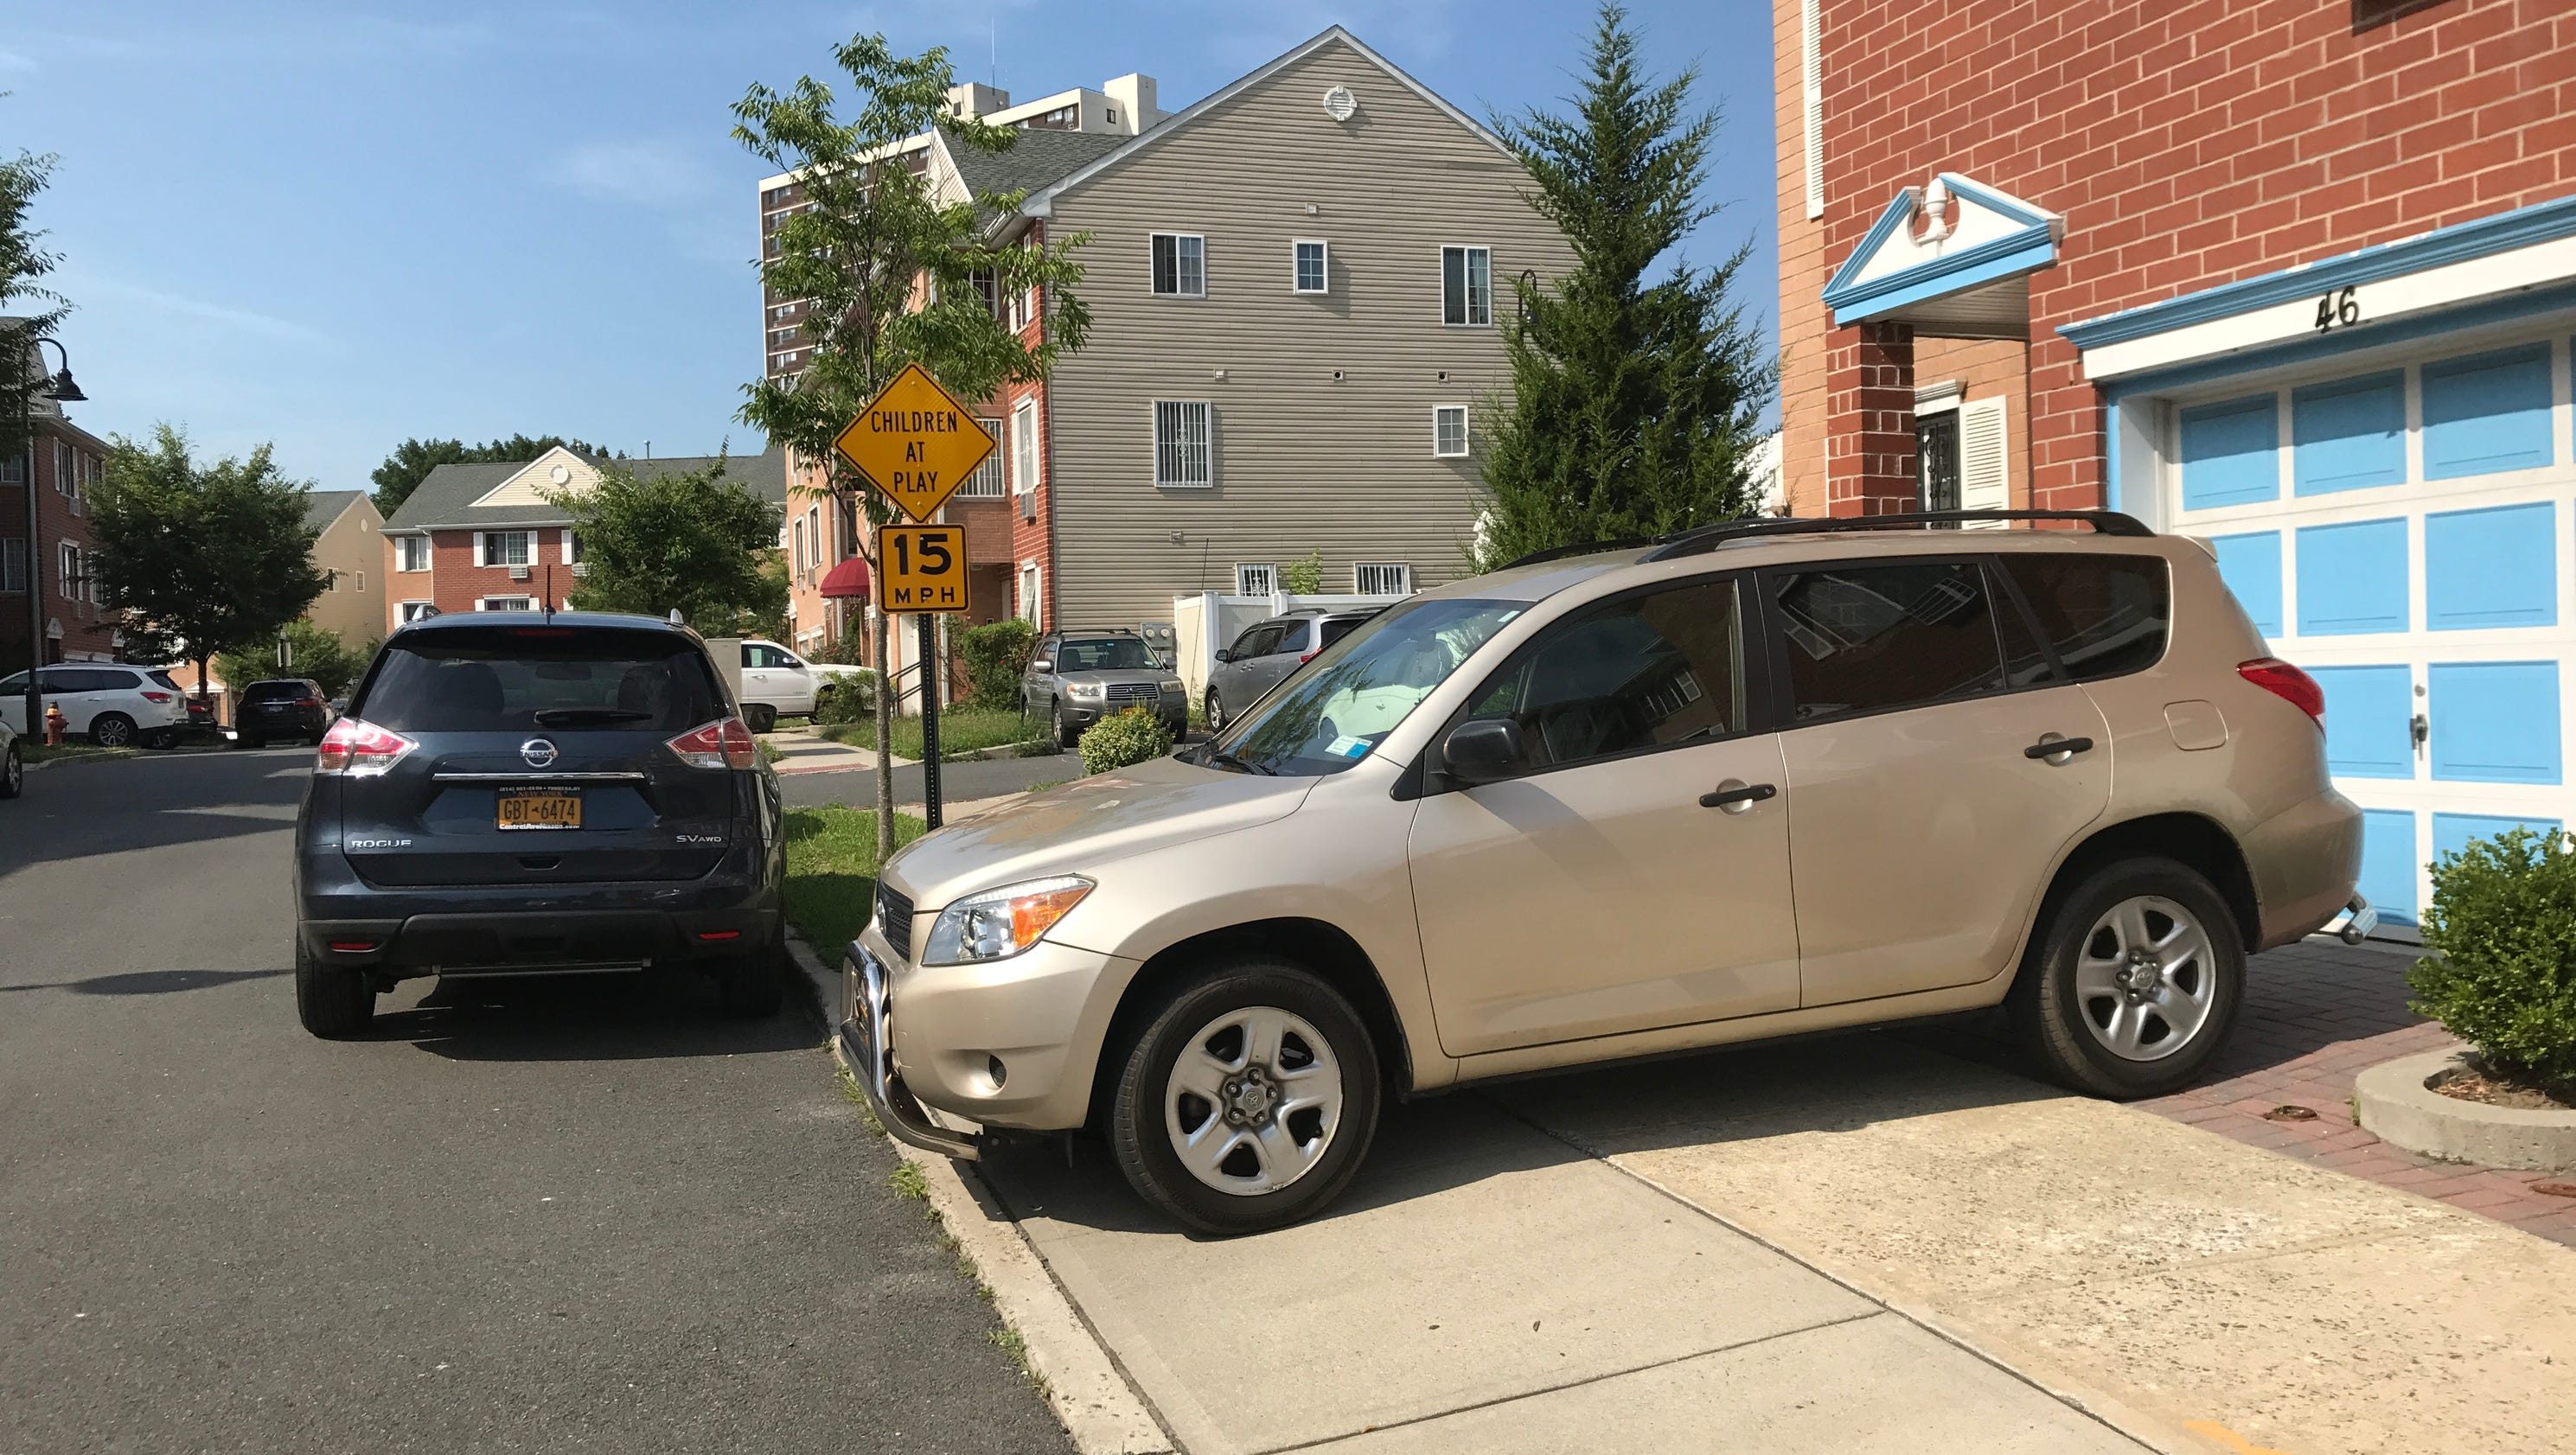 Yonkers considering resident permit parking